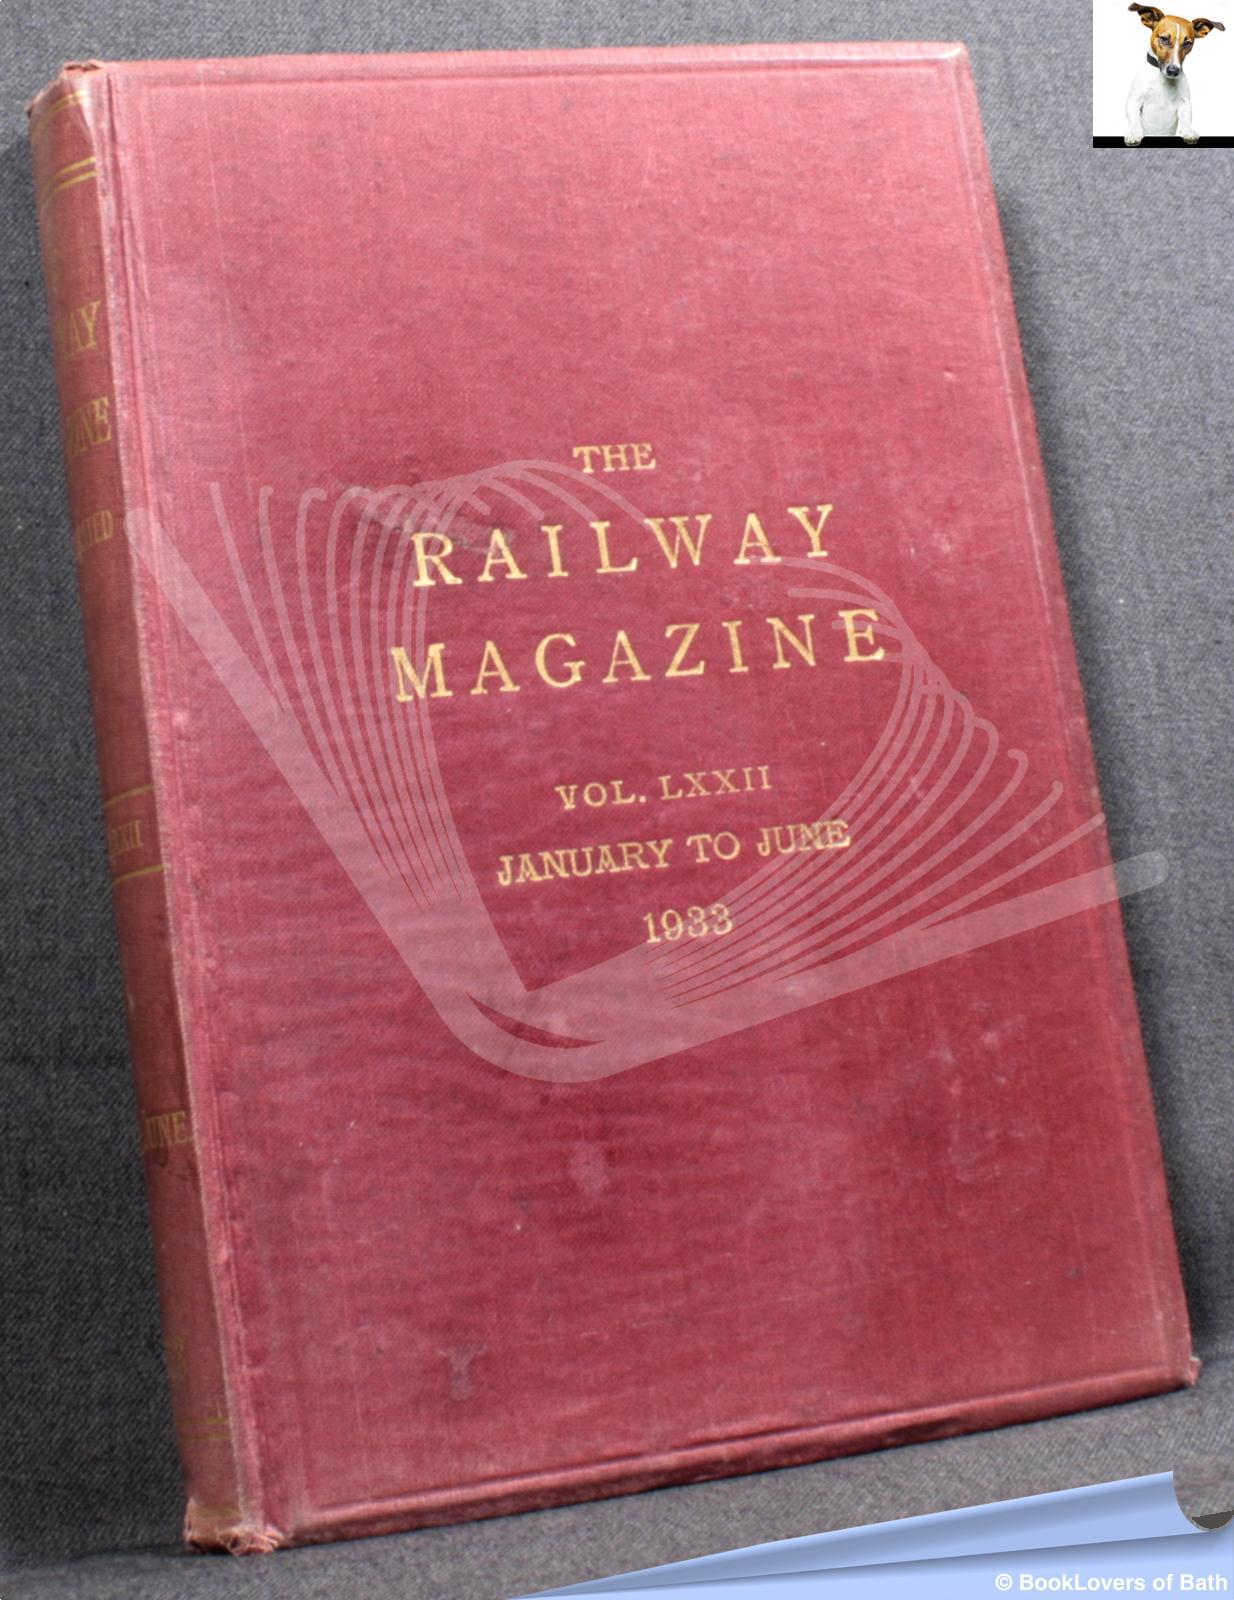 The Railway Magazine Vol. LXXII January to June 1933 - Anon.